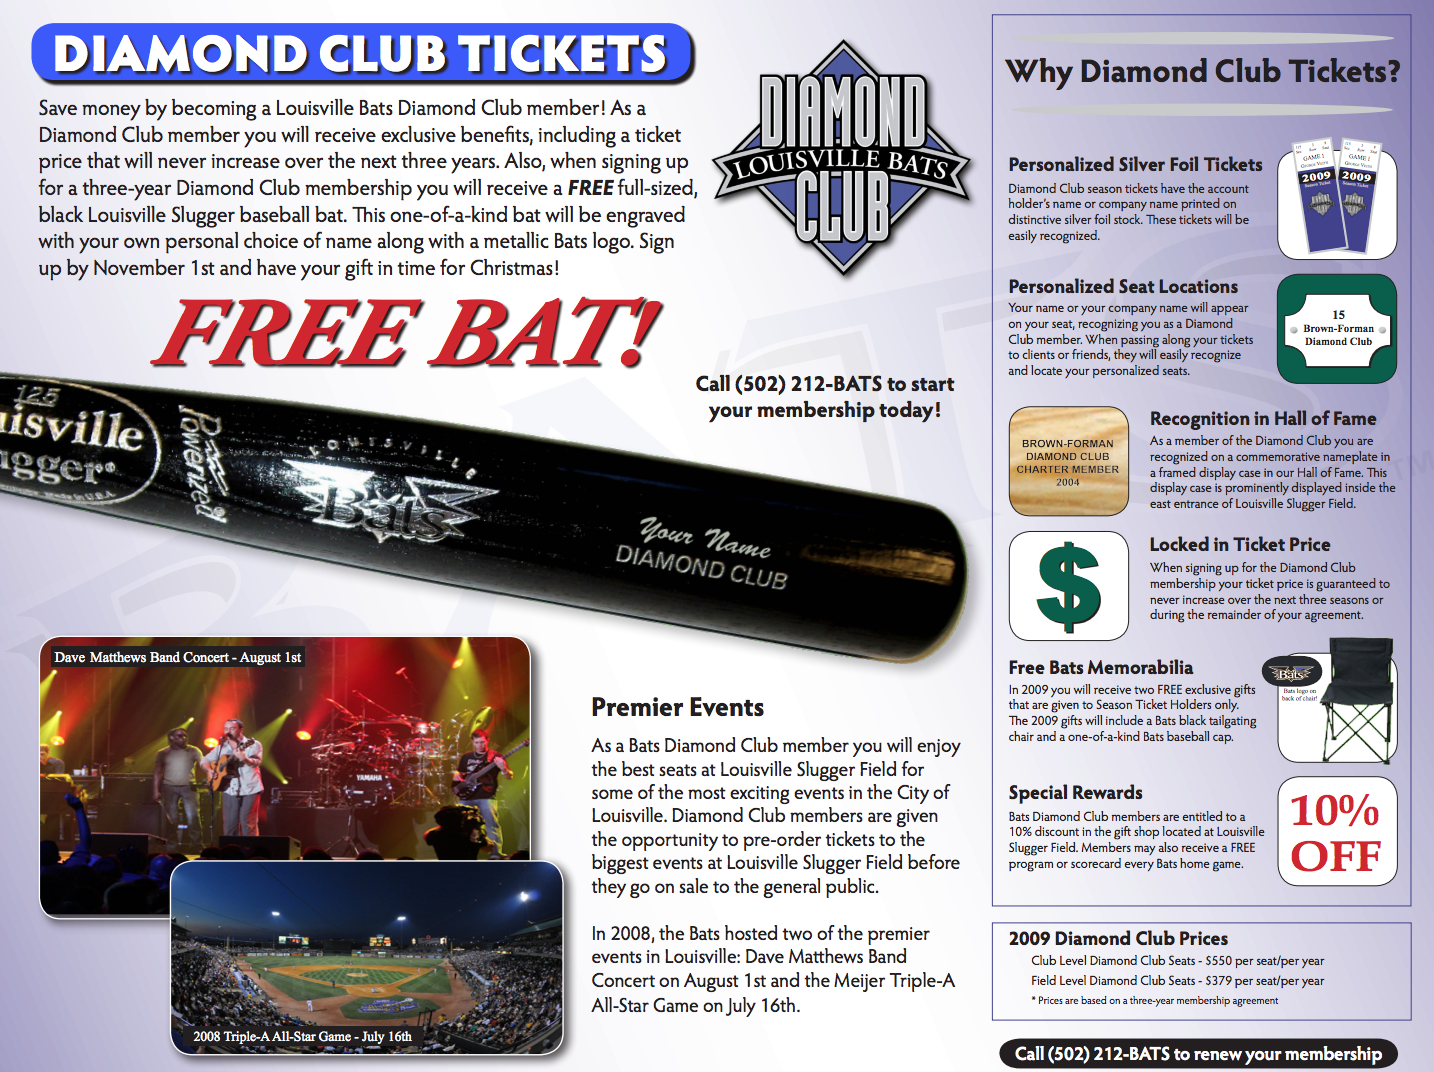 Louisville Bats Brochure - Photos by C Michael Stewart